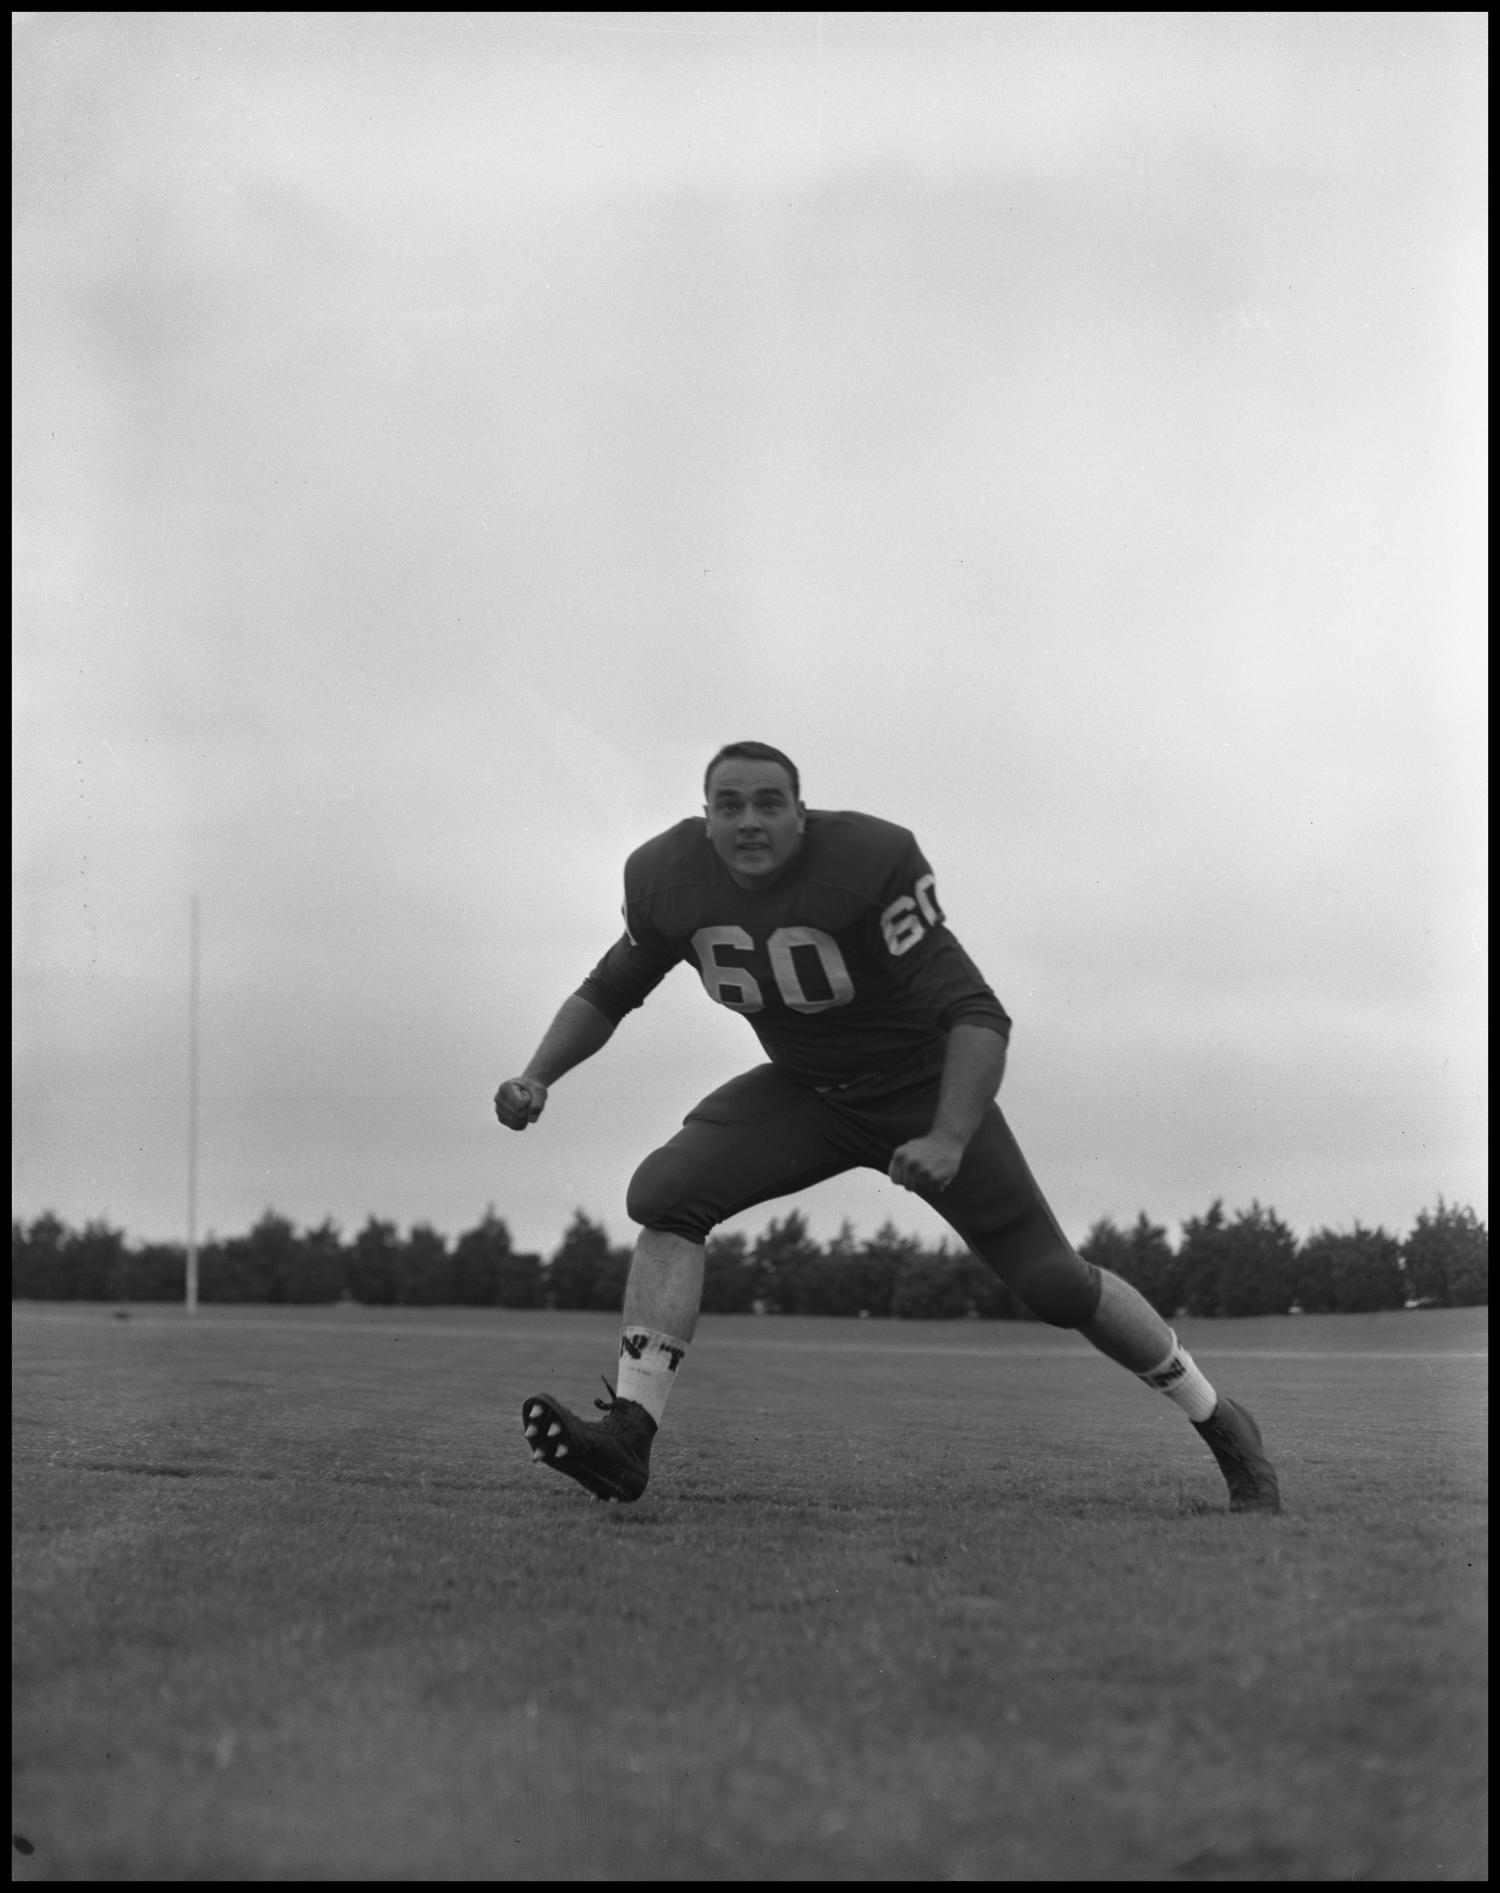 [Football Player No. 60 Running on the Field, September 1962]                                                                                                      [Sequence #]: 1 of 1